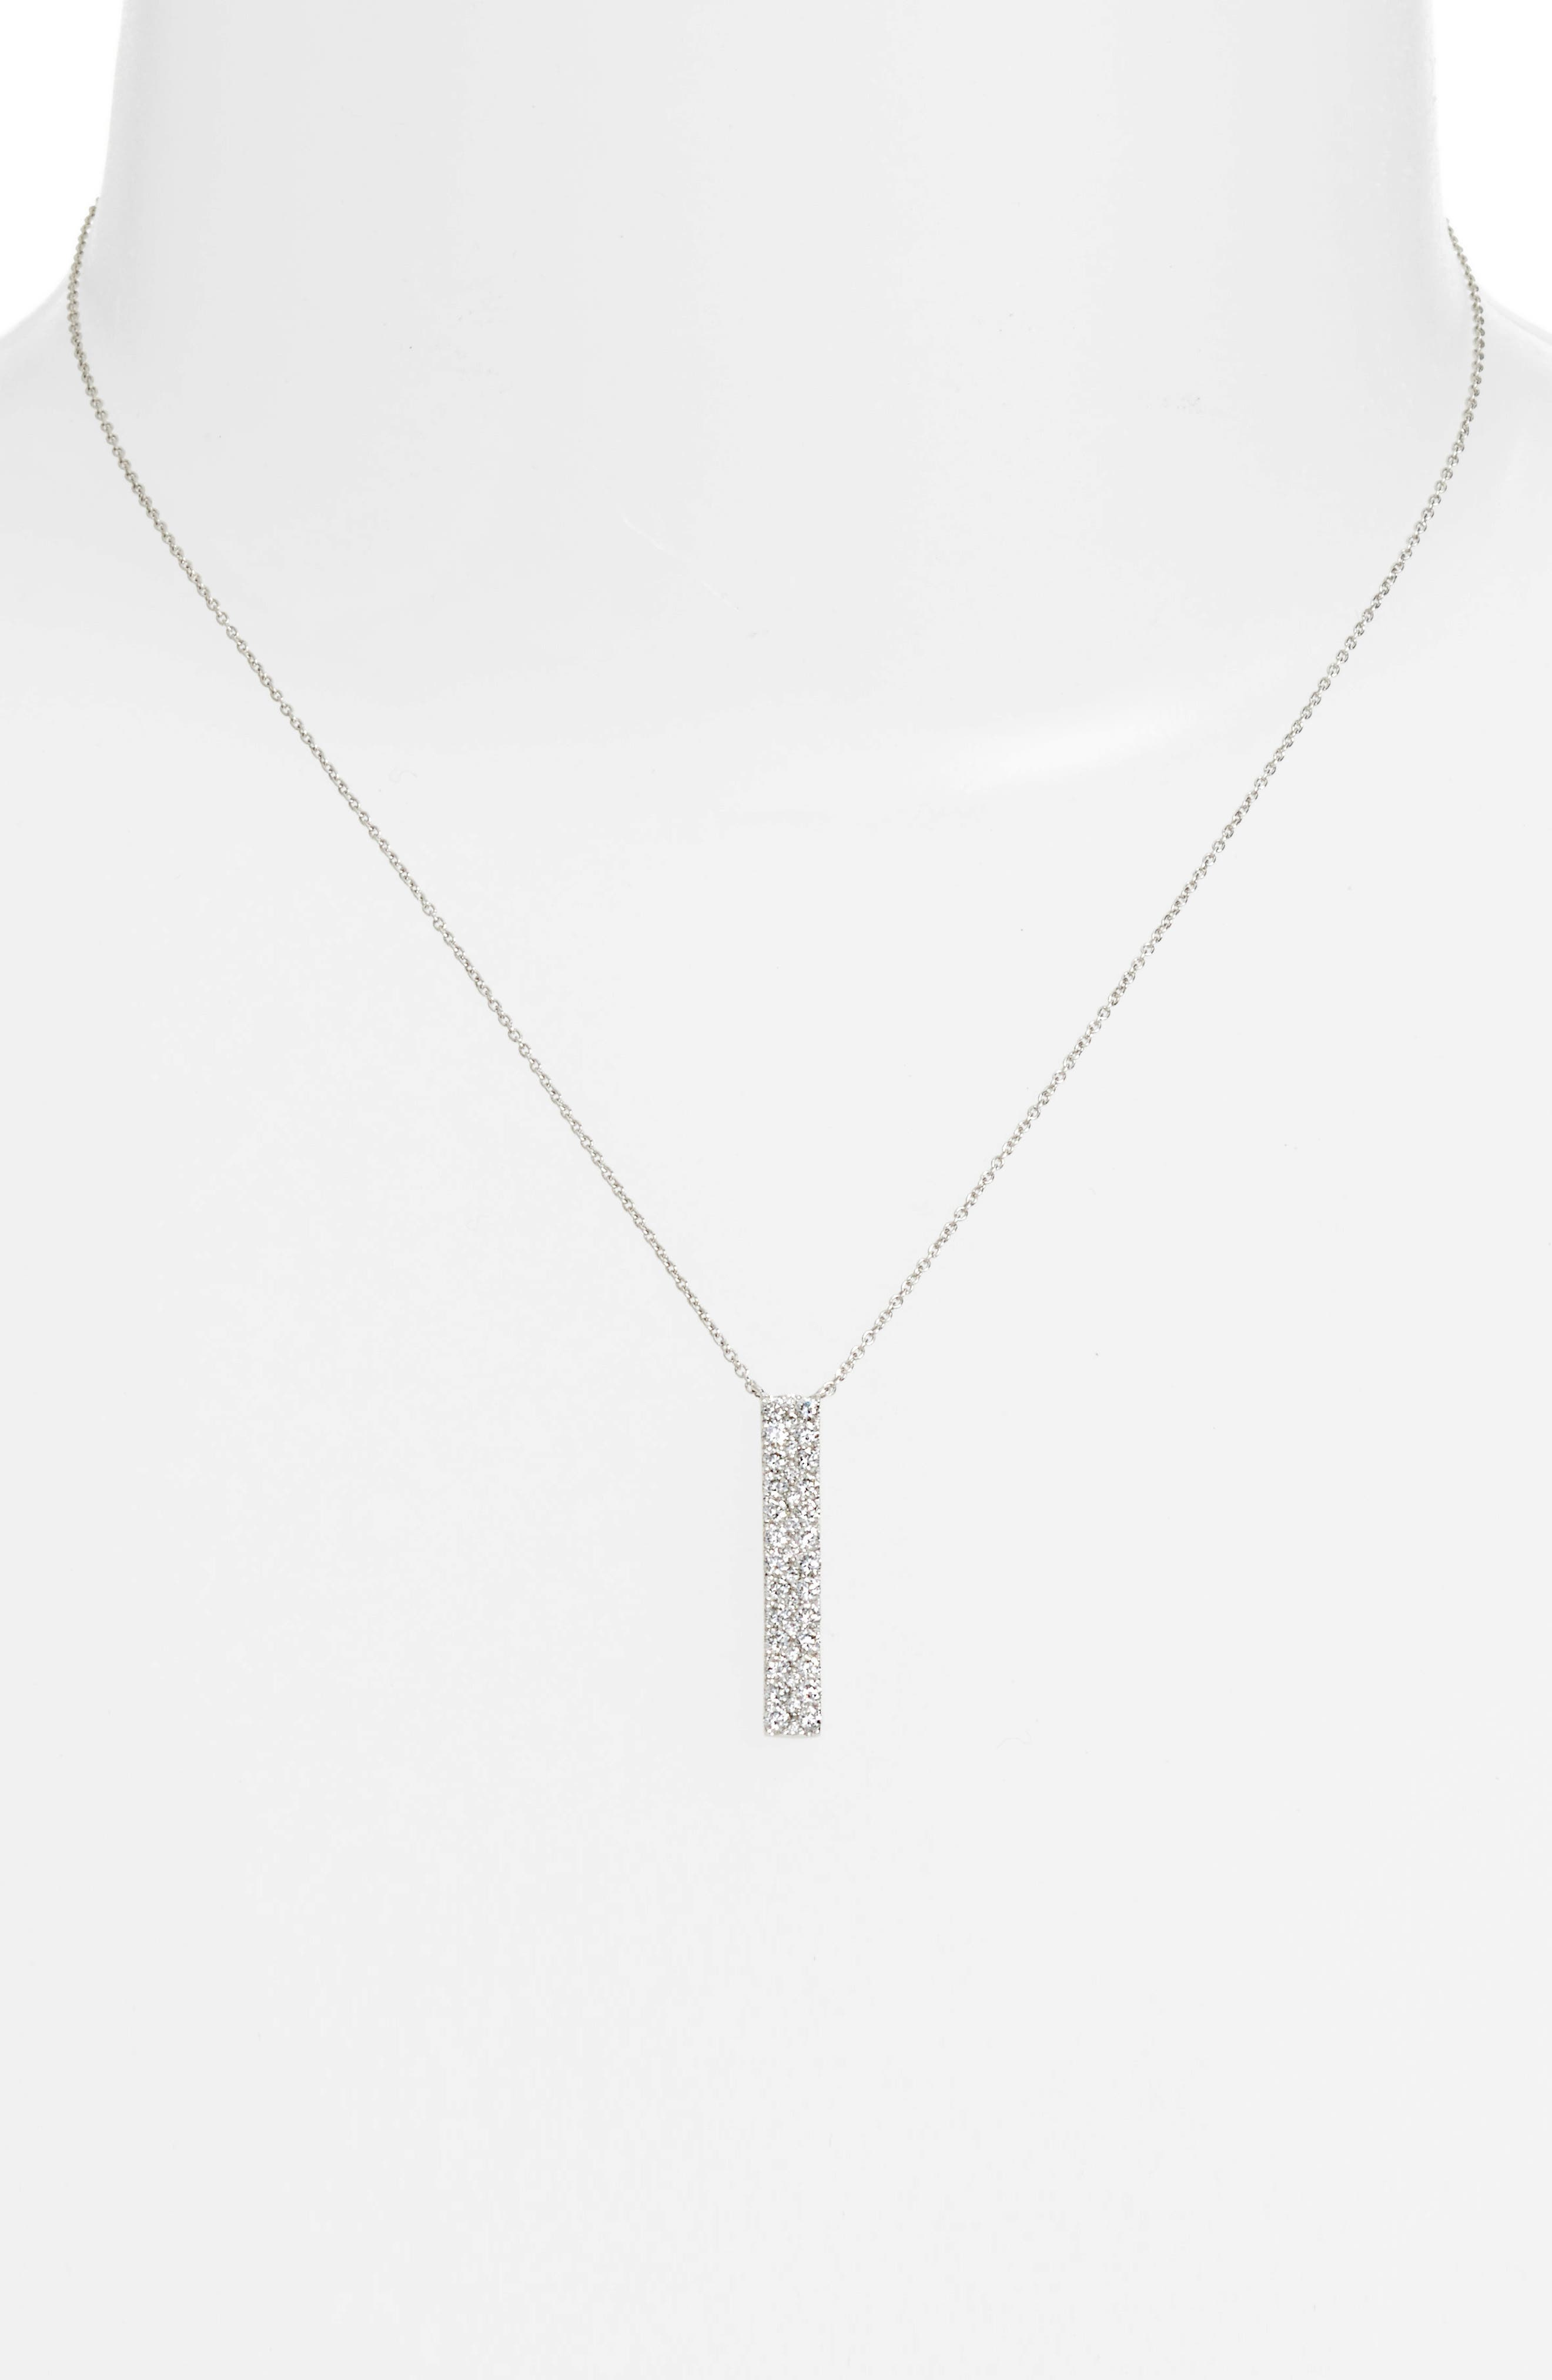 Alternate Image 1 Selected - Bony Levy Kiera Diamond Bar Pendant Necklace (Nordstrom Exclusive)